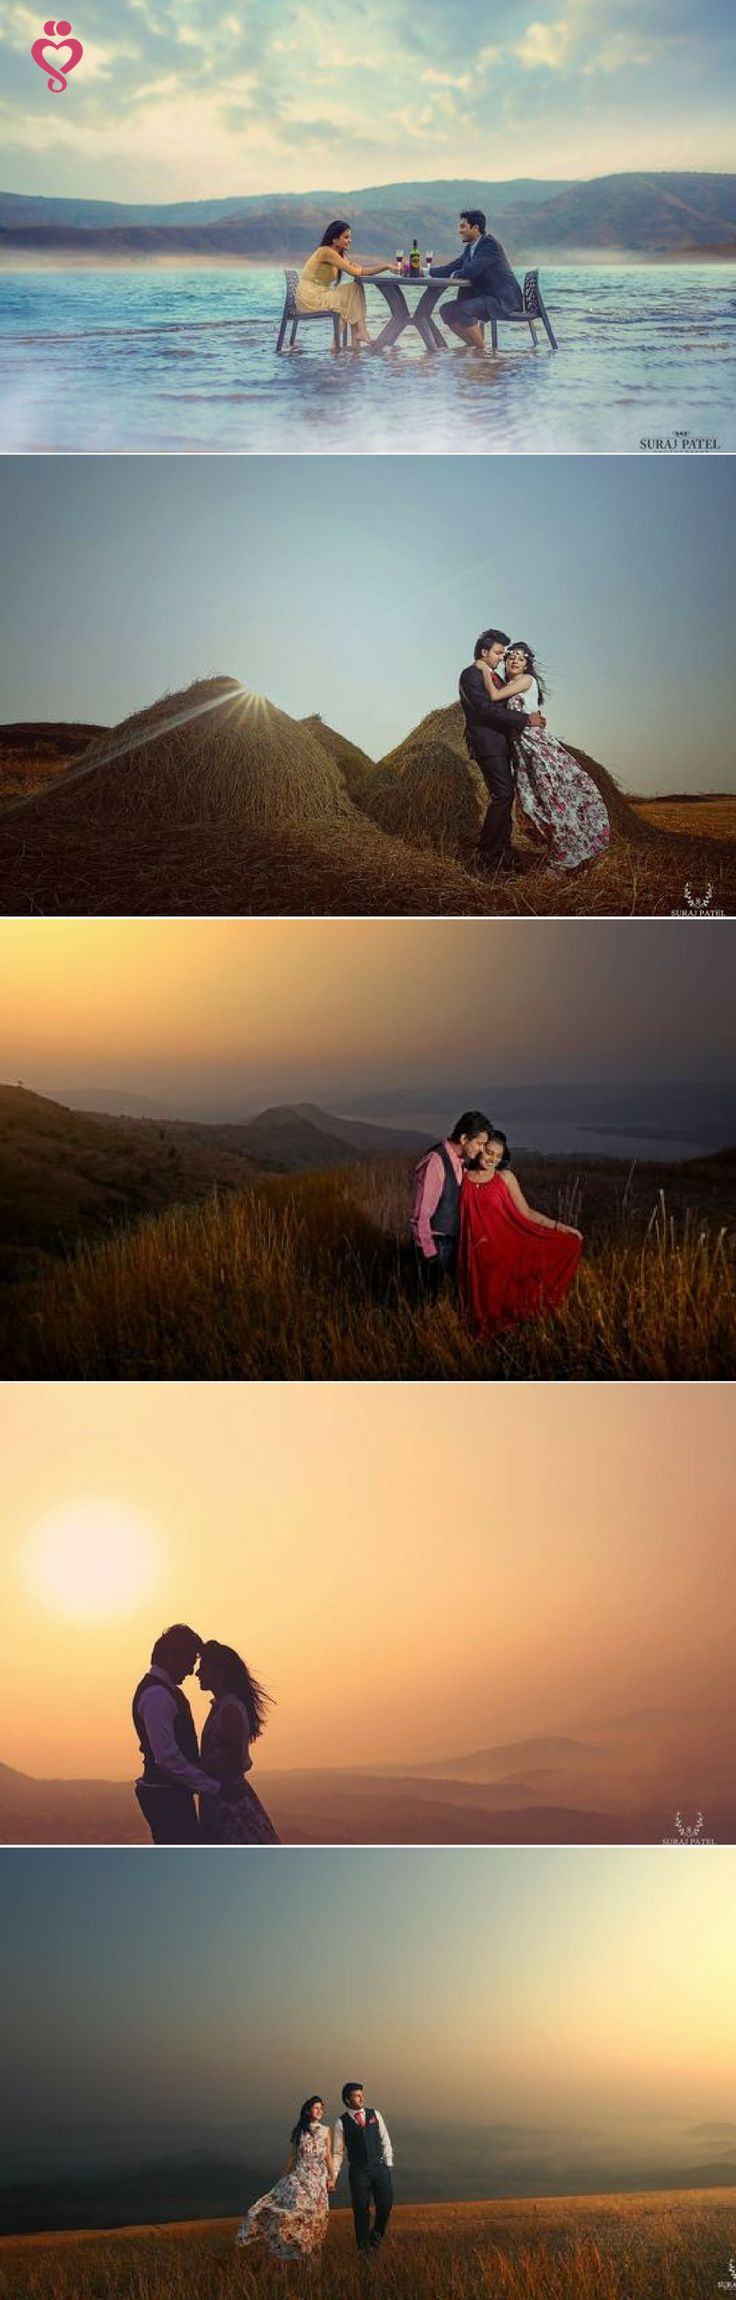 Love Story Shot - Bride and Groom in a Nice Outfits in Different locations. In the sea, in the mountains, with a sunset. Best Locations WeddingNet #weddingnet #indianwedding #lovestory #photoshoot #inspiration #couple #love #destination #location #lovely #places